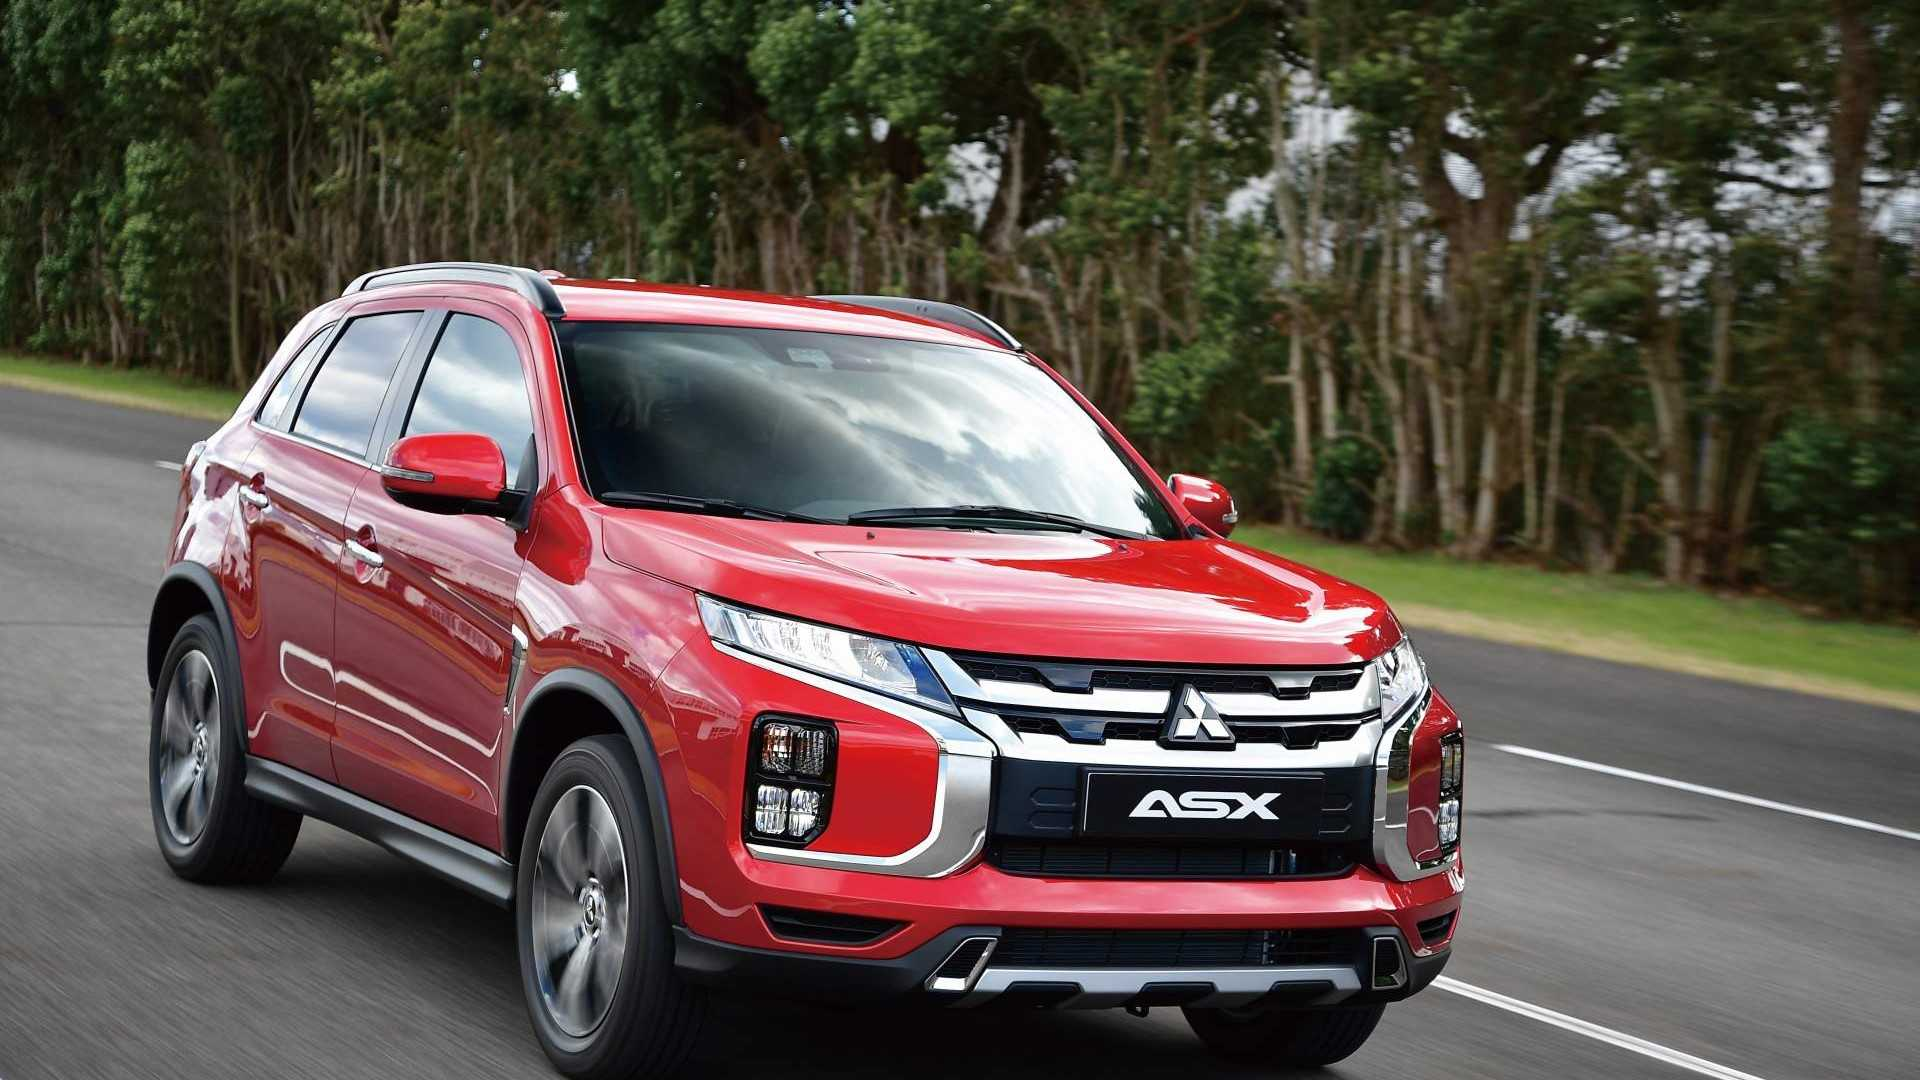 39 The Best Mitsubishi Asx 2020 Hybrid Review And Release Date